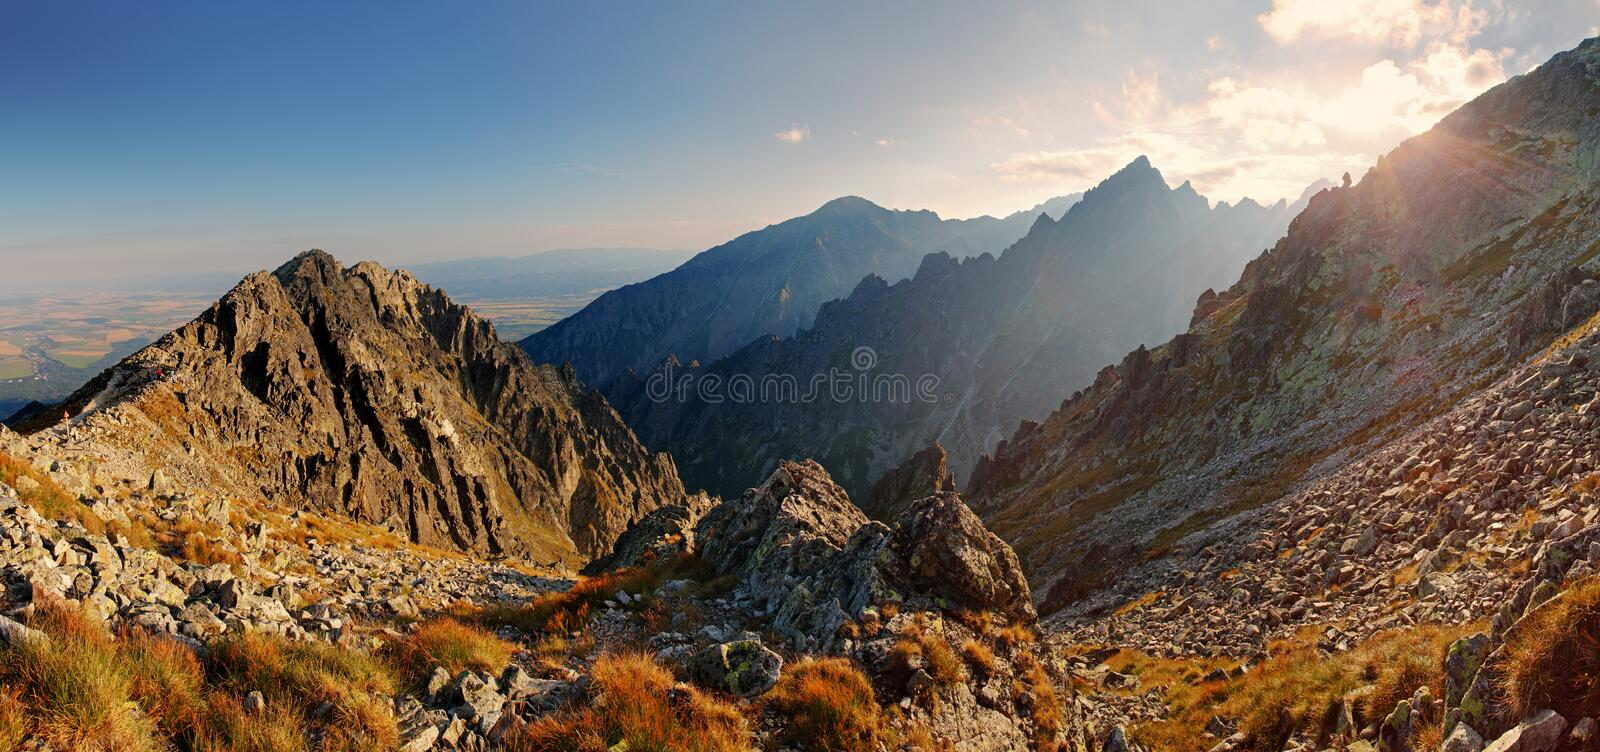 Sunset in mountains view from Lomnicke sedlo in High Tatras royalty free stock image